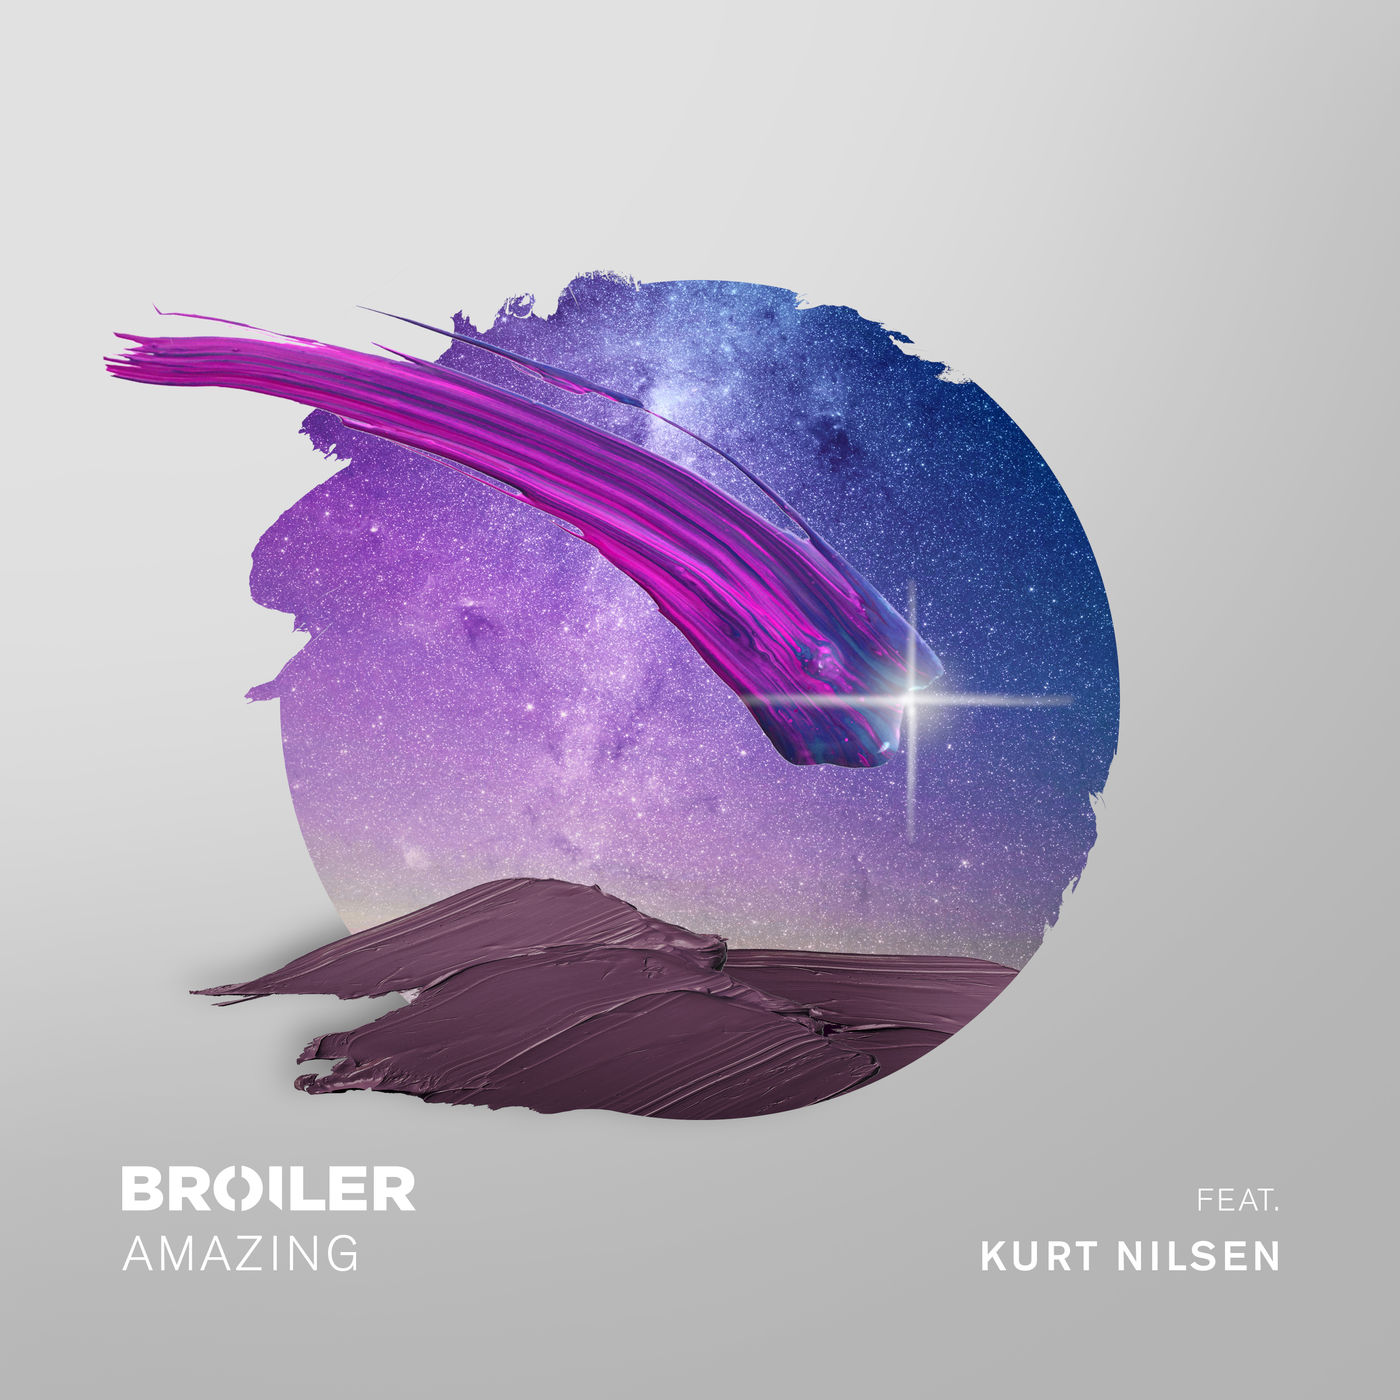 Broiler - Amazing (feat. Kurt Nilsen) - Single Cover